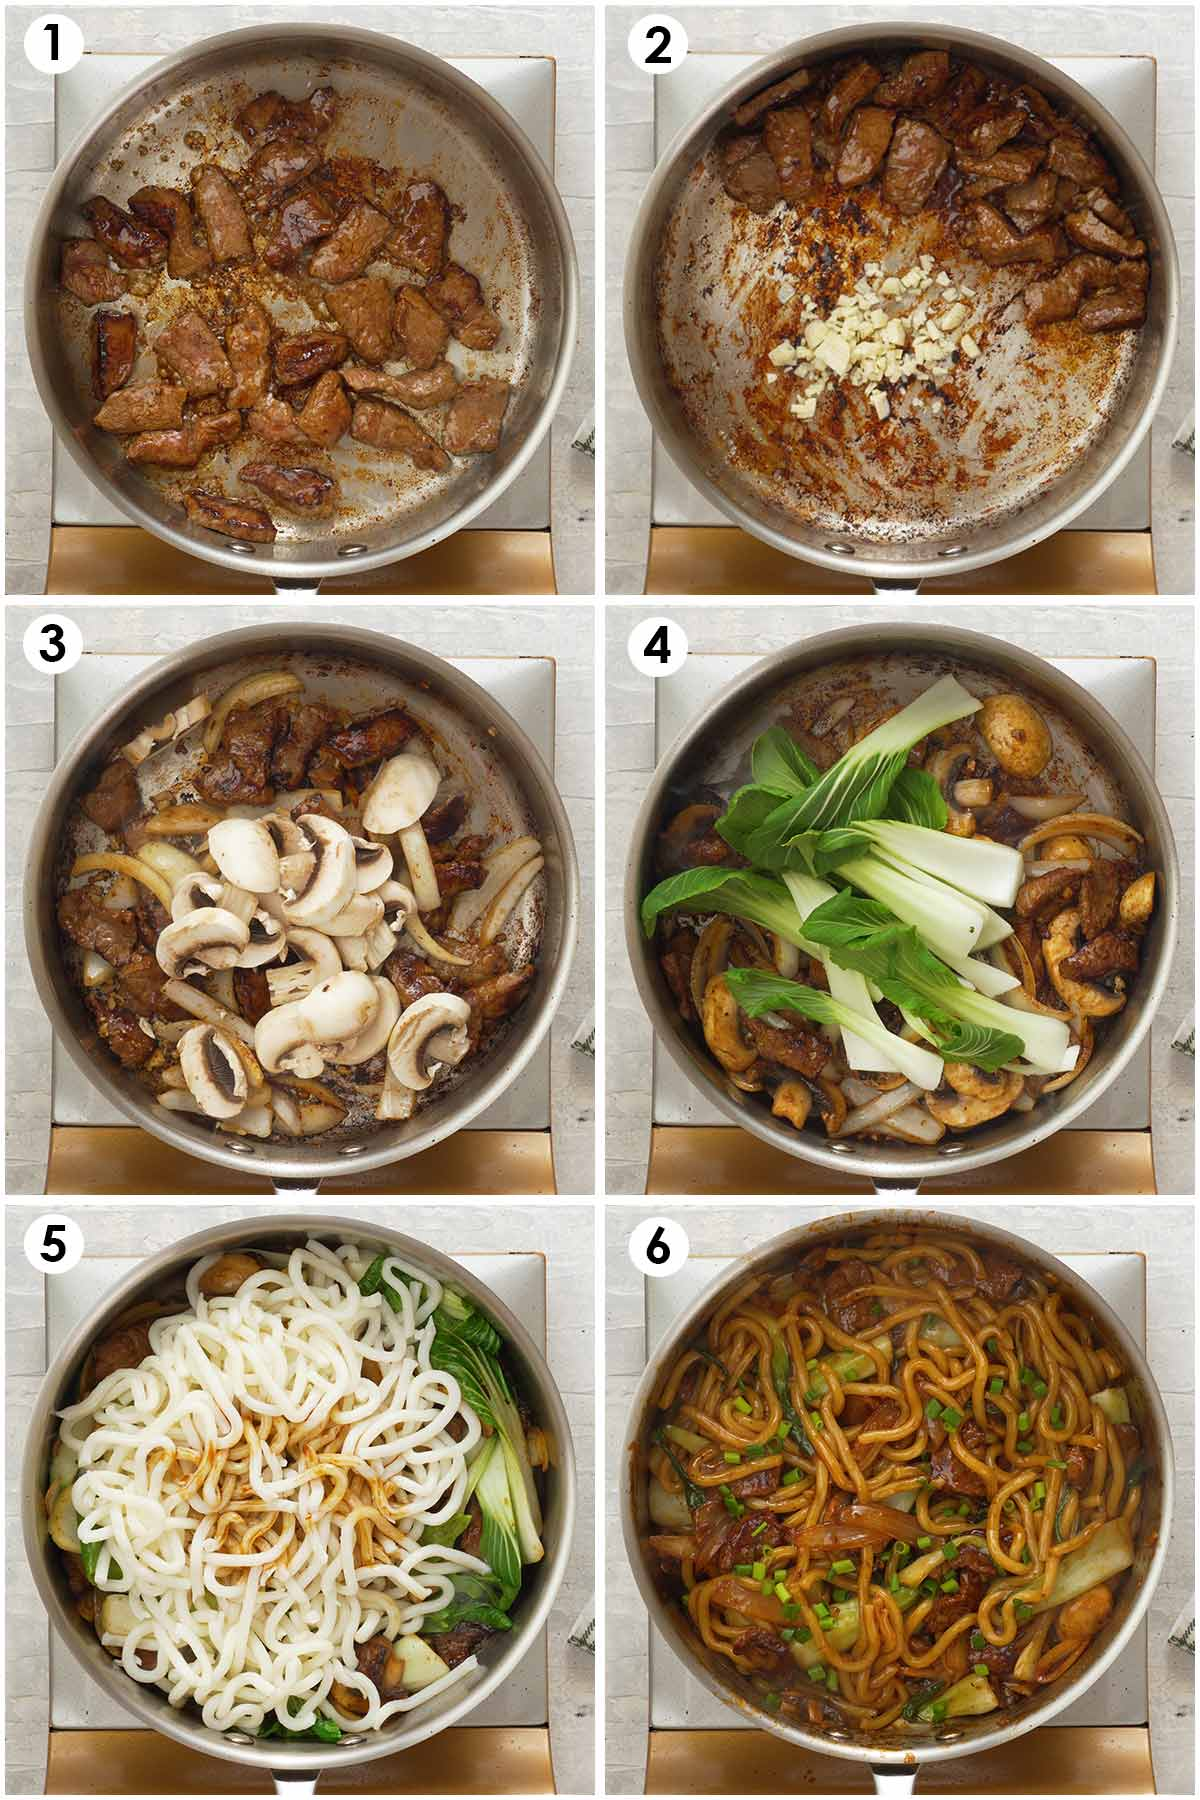 Six image collage showing how to cook beef udon stir fry.